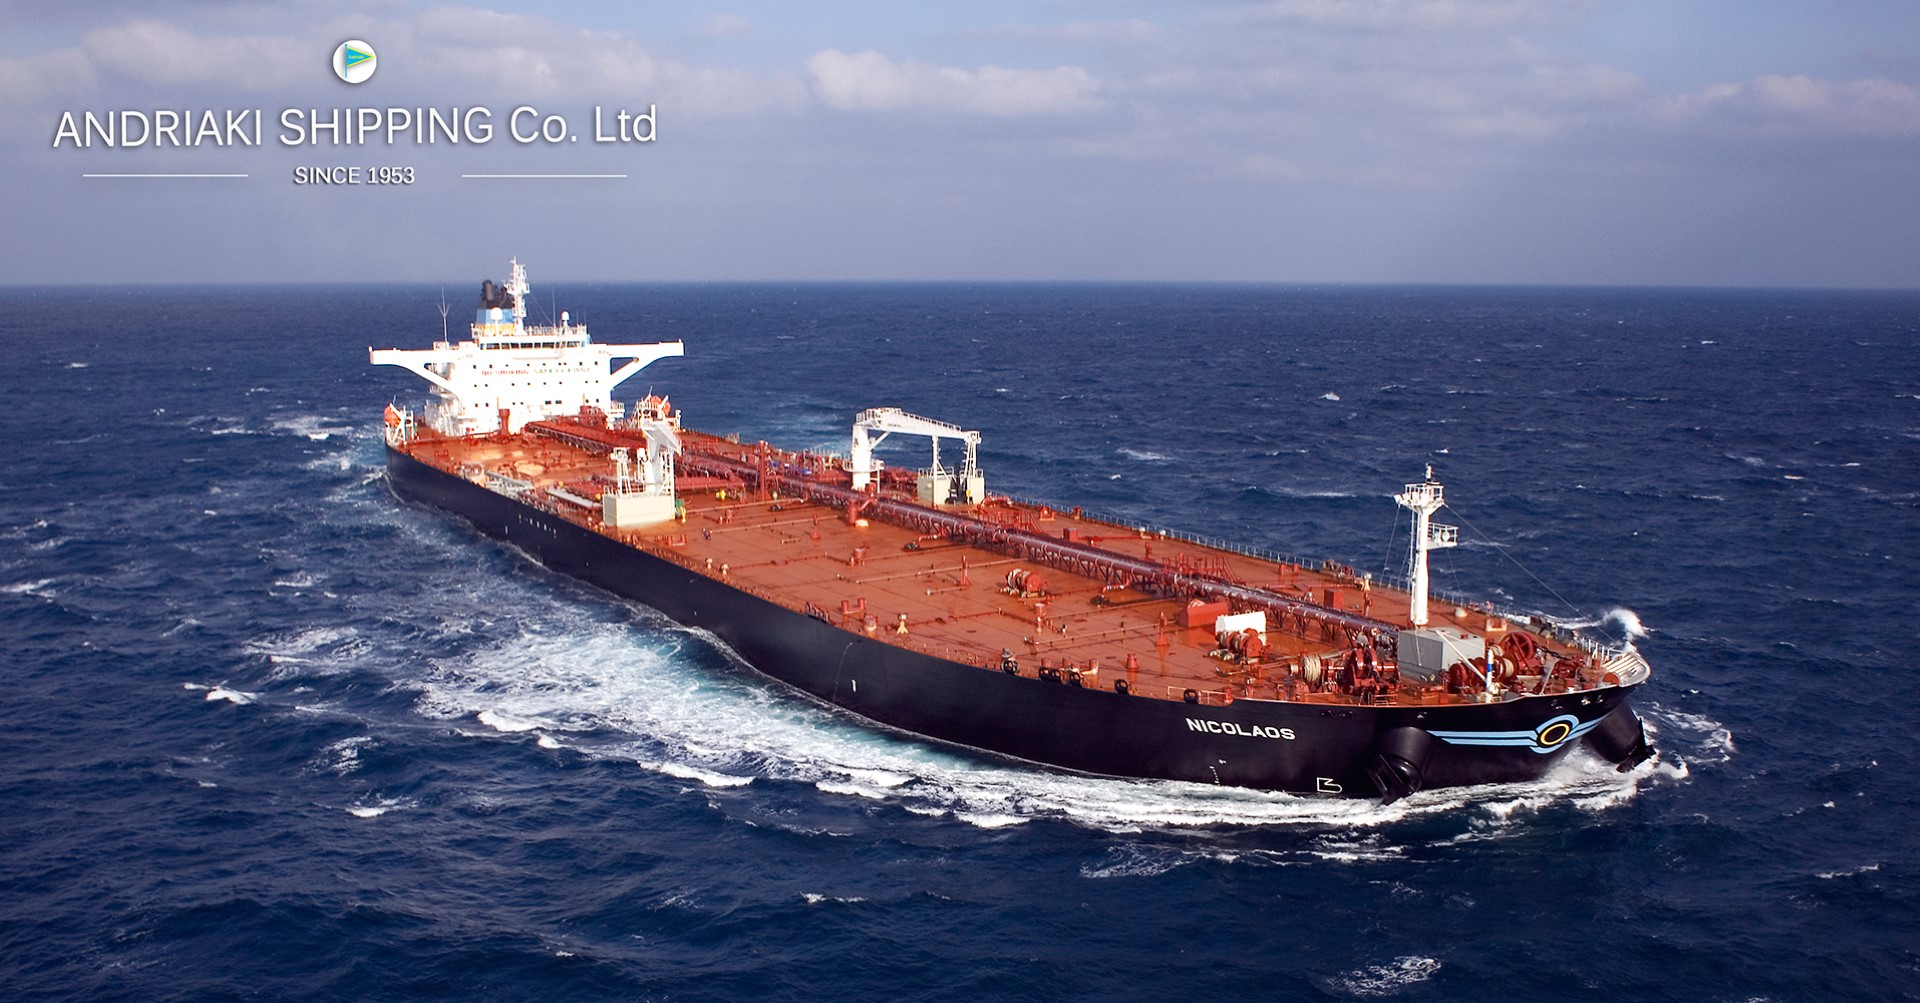 Andriaki Shipping Co  Ltd